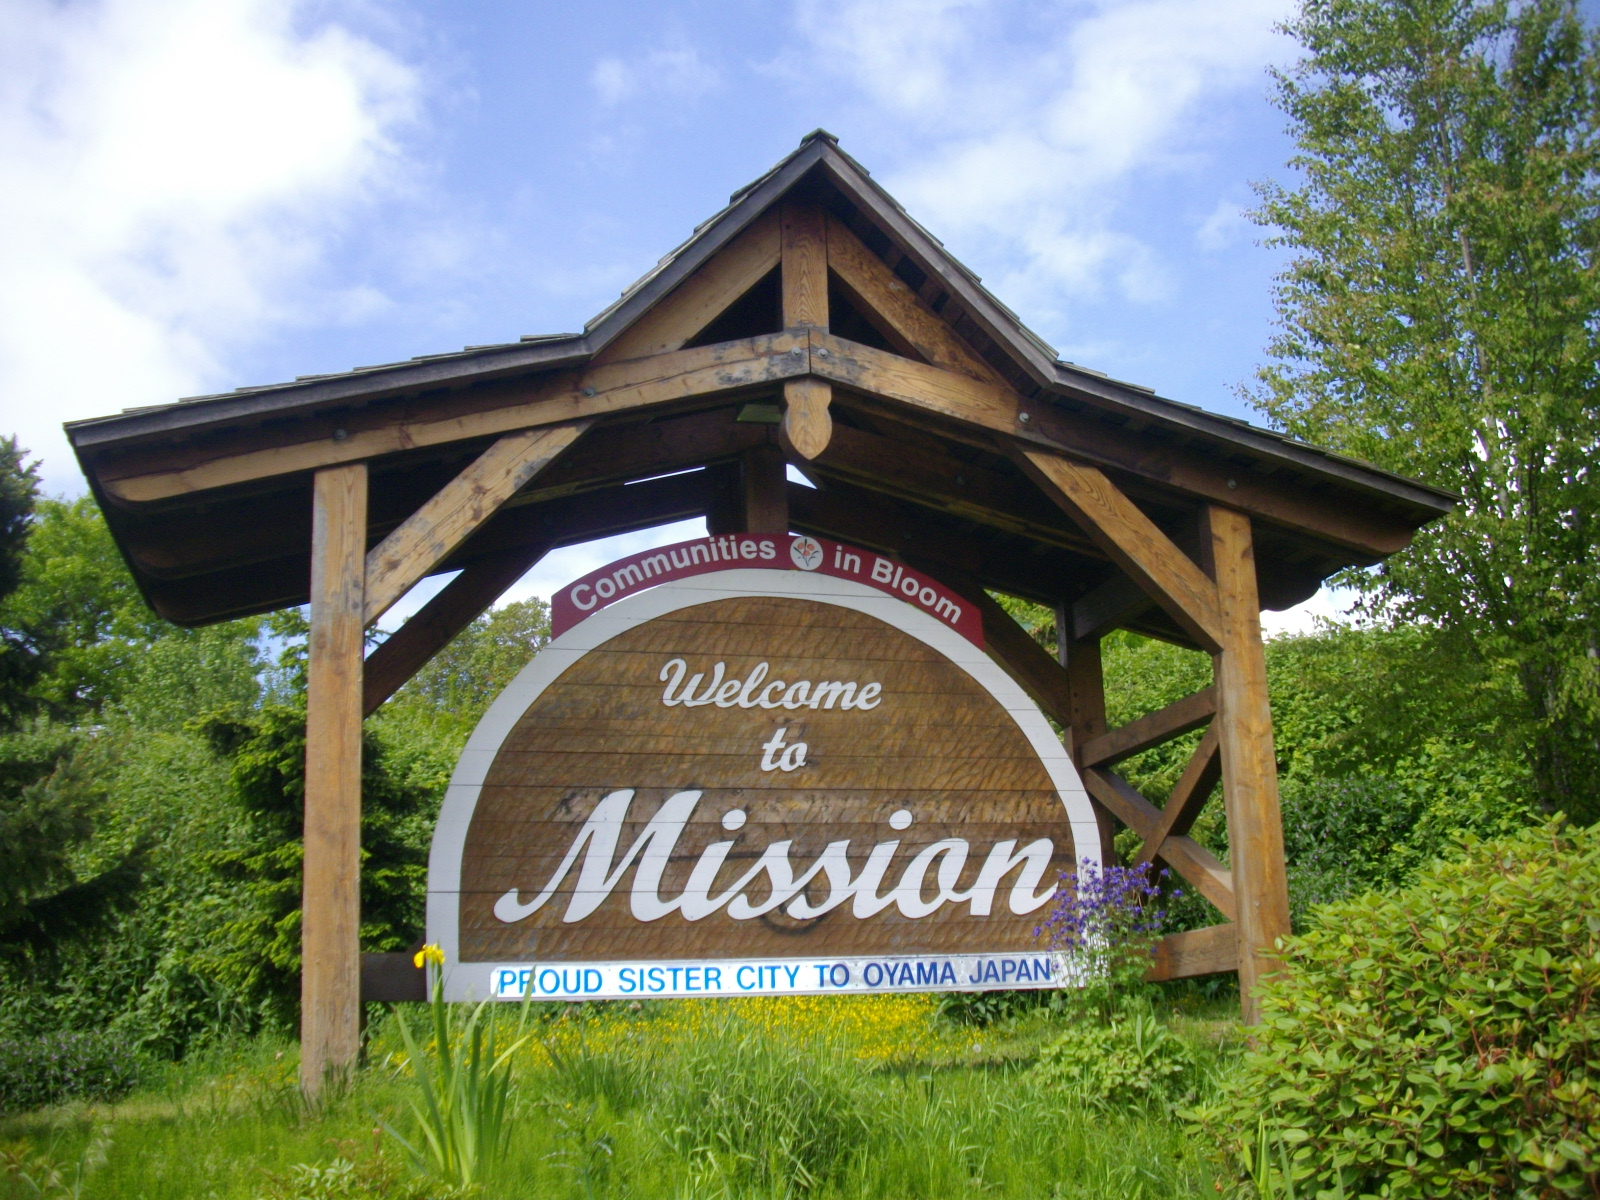 Mission's_welcome_sign.JPG